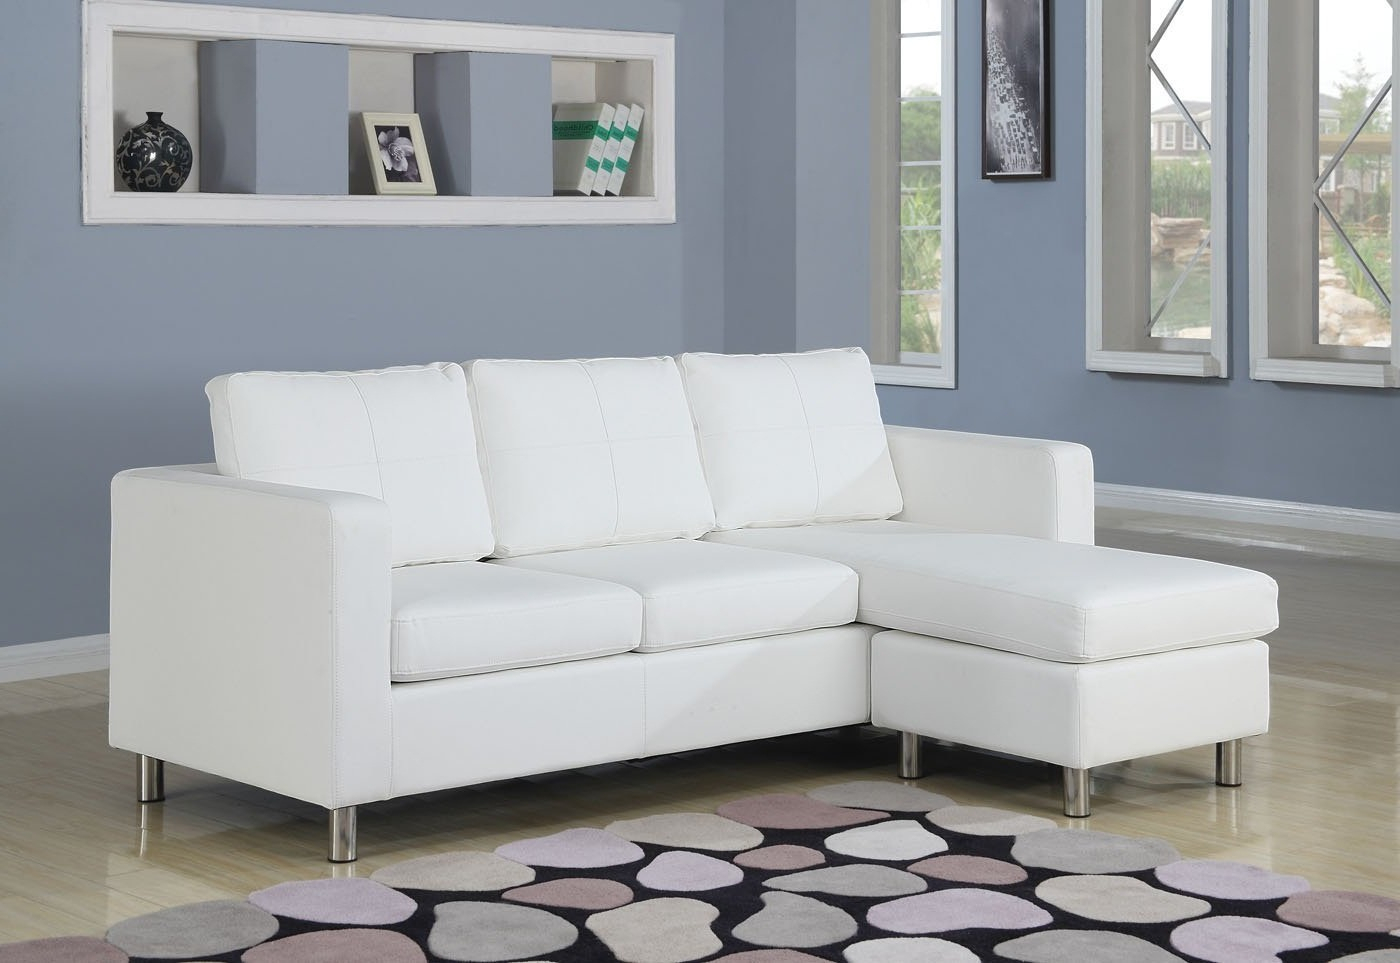 Small Sectional Sofa With Chaise: Perfect Choice For A Throughout 4Pc Crowningshield Contemporary Chaise Sectional Sofas (View 4 of 15)